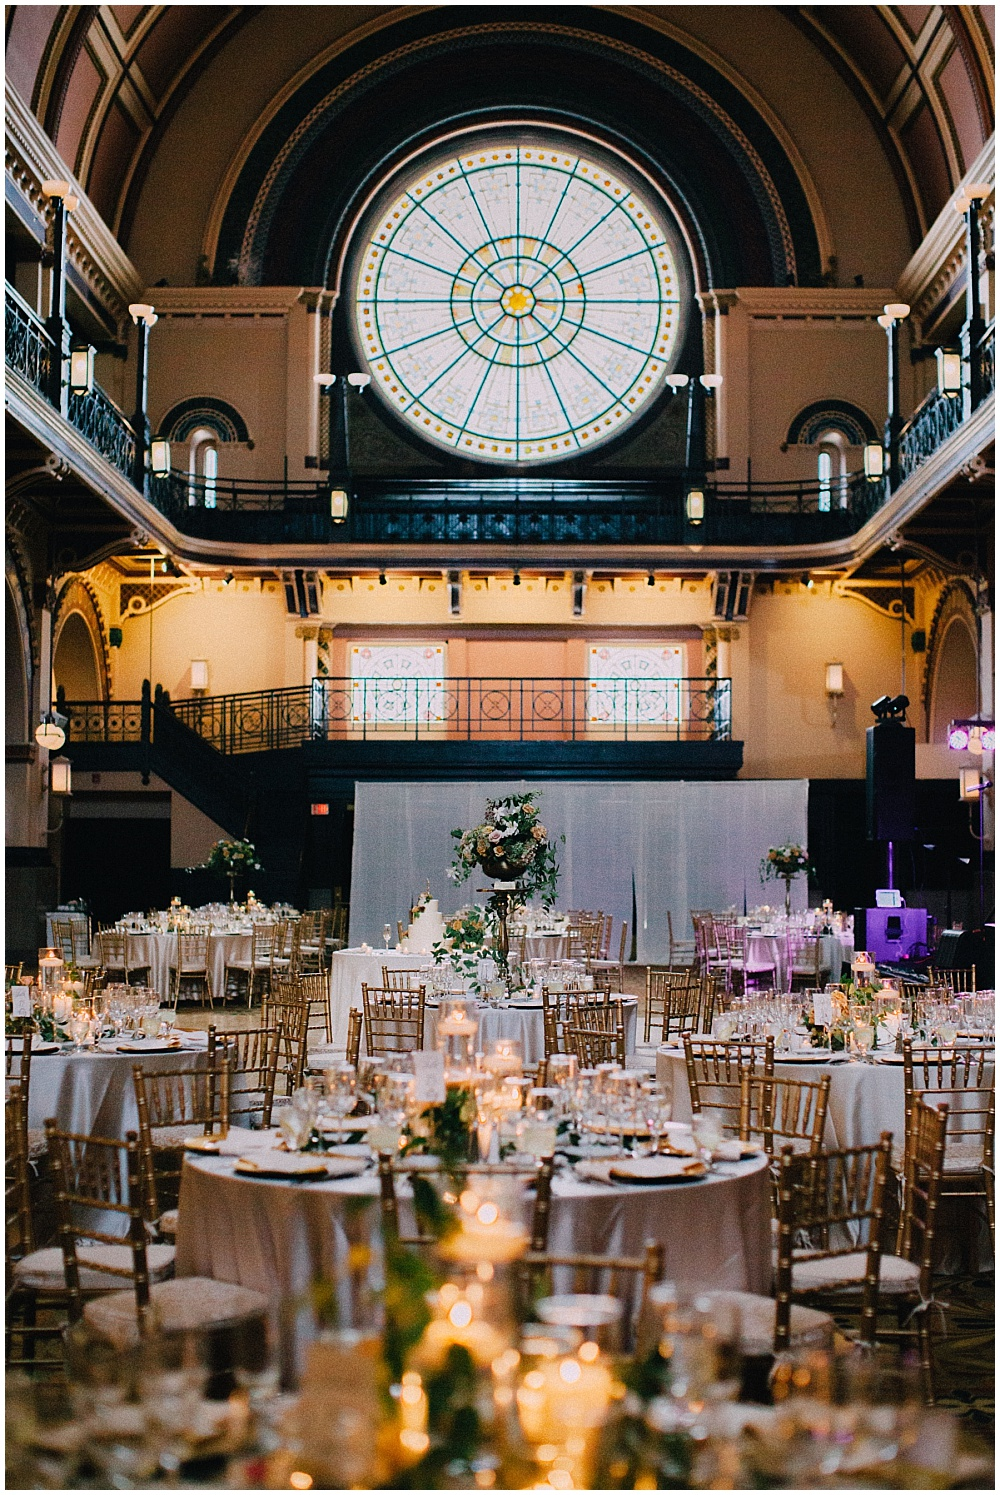 Wedding reception with simple summer wedding flowers and gold accents | Downtown Indianapolis Wedding by Caroline Grace Photography & Jessica Dum Wedding Coordination